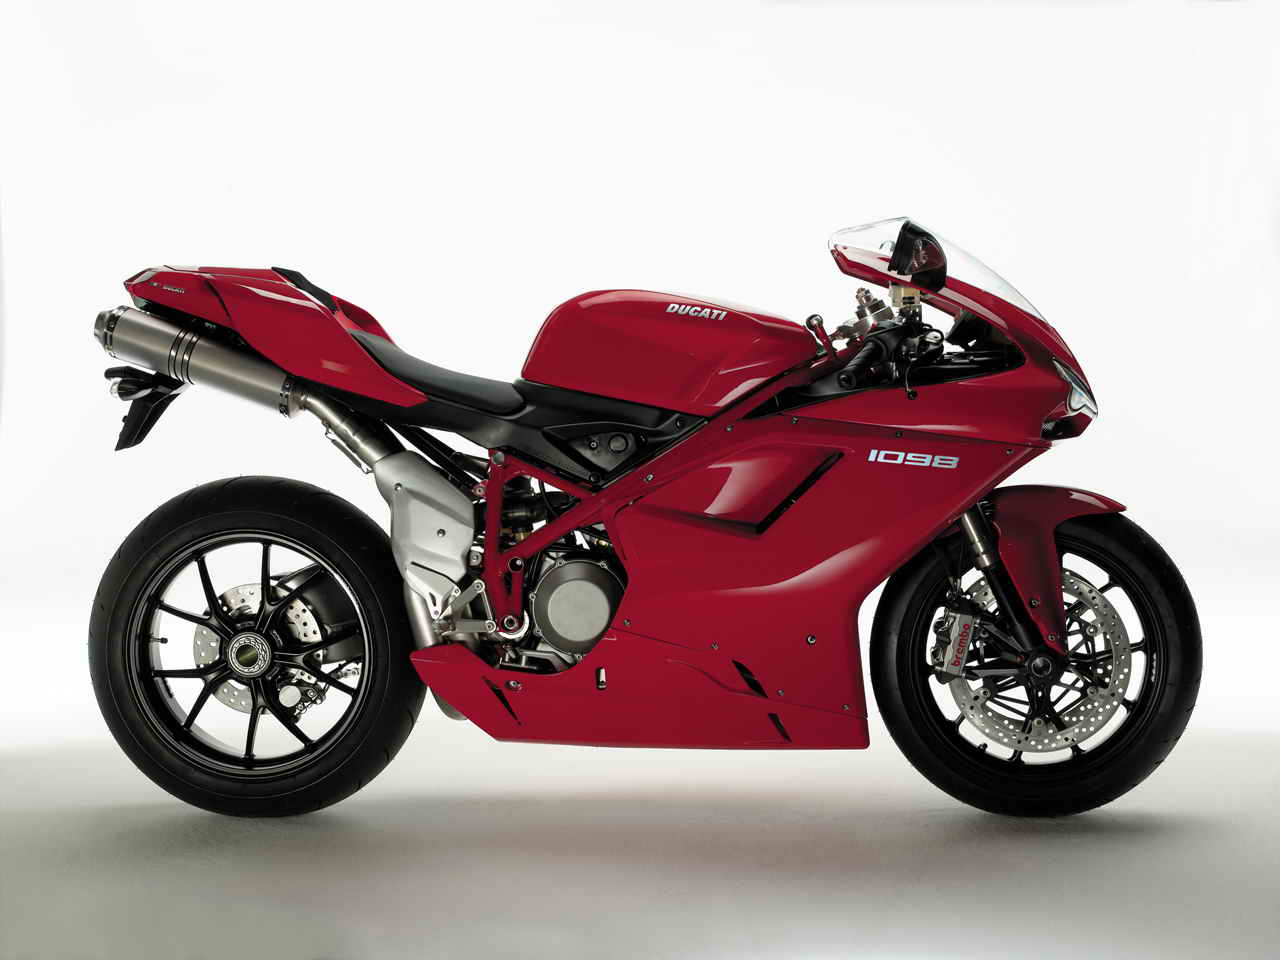 Ducati To Debut Its 2007 Models At MCN London Motorcycle Show News - Top Speed